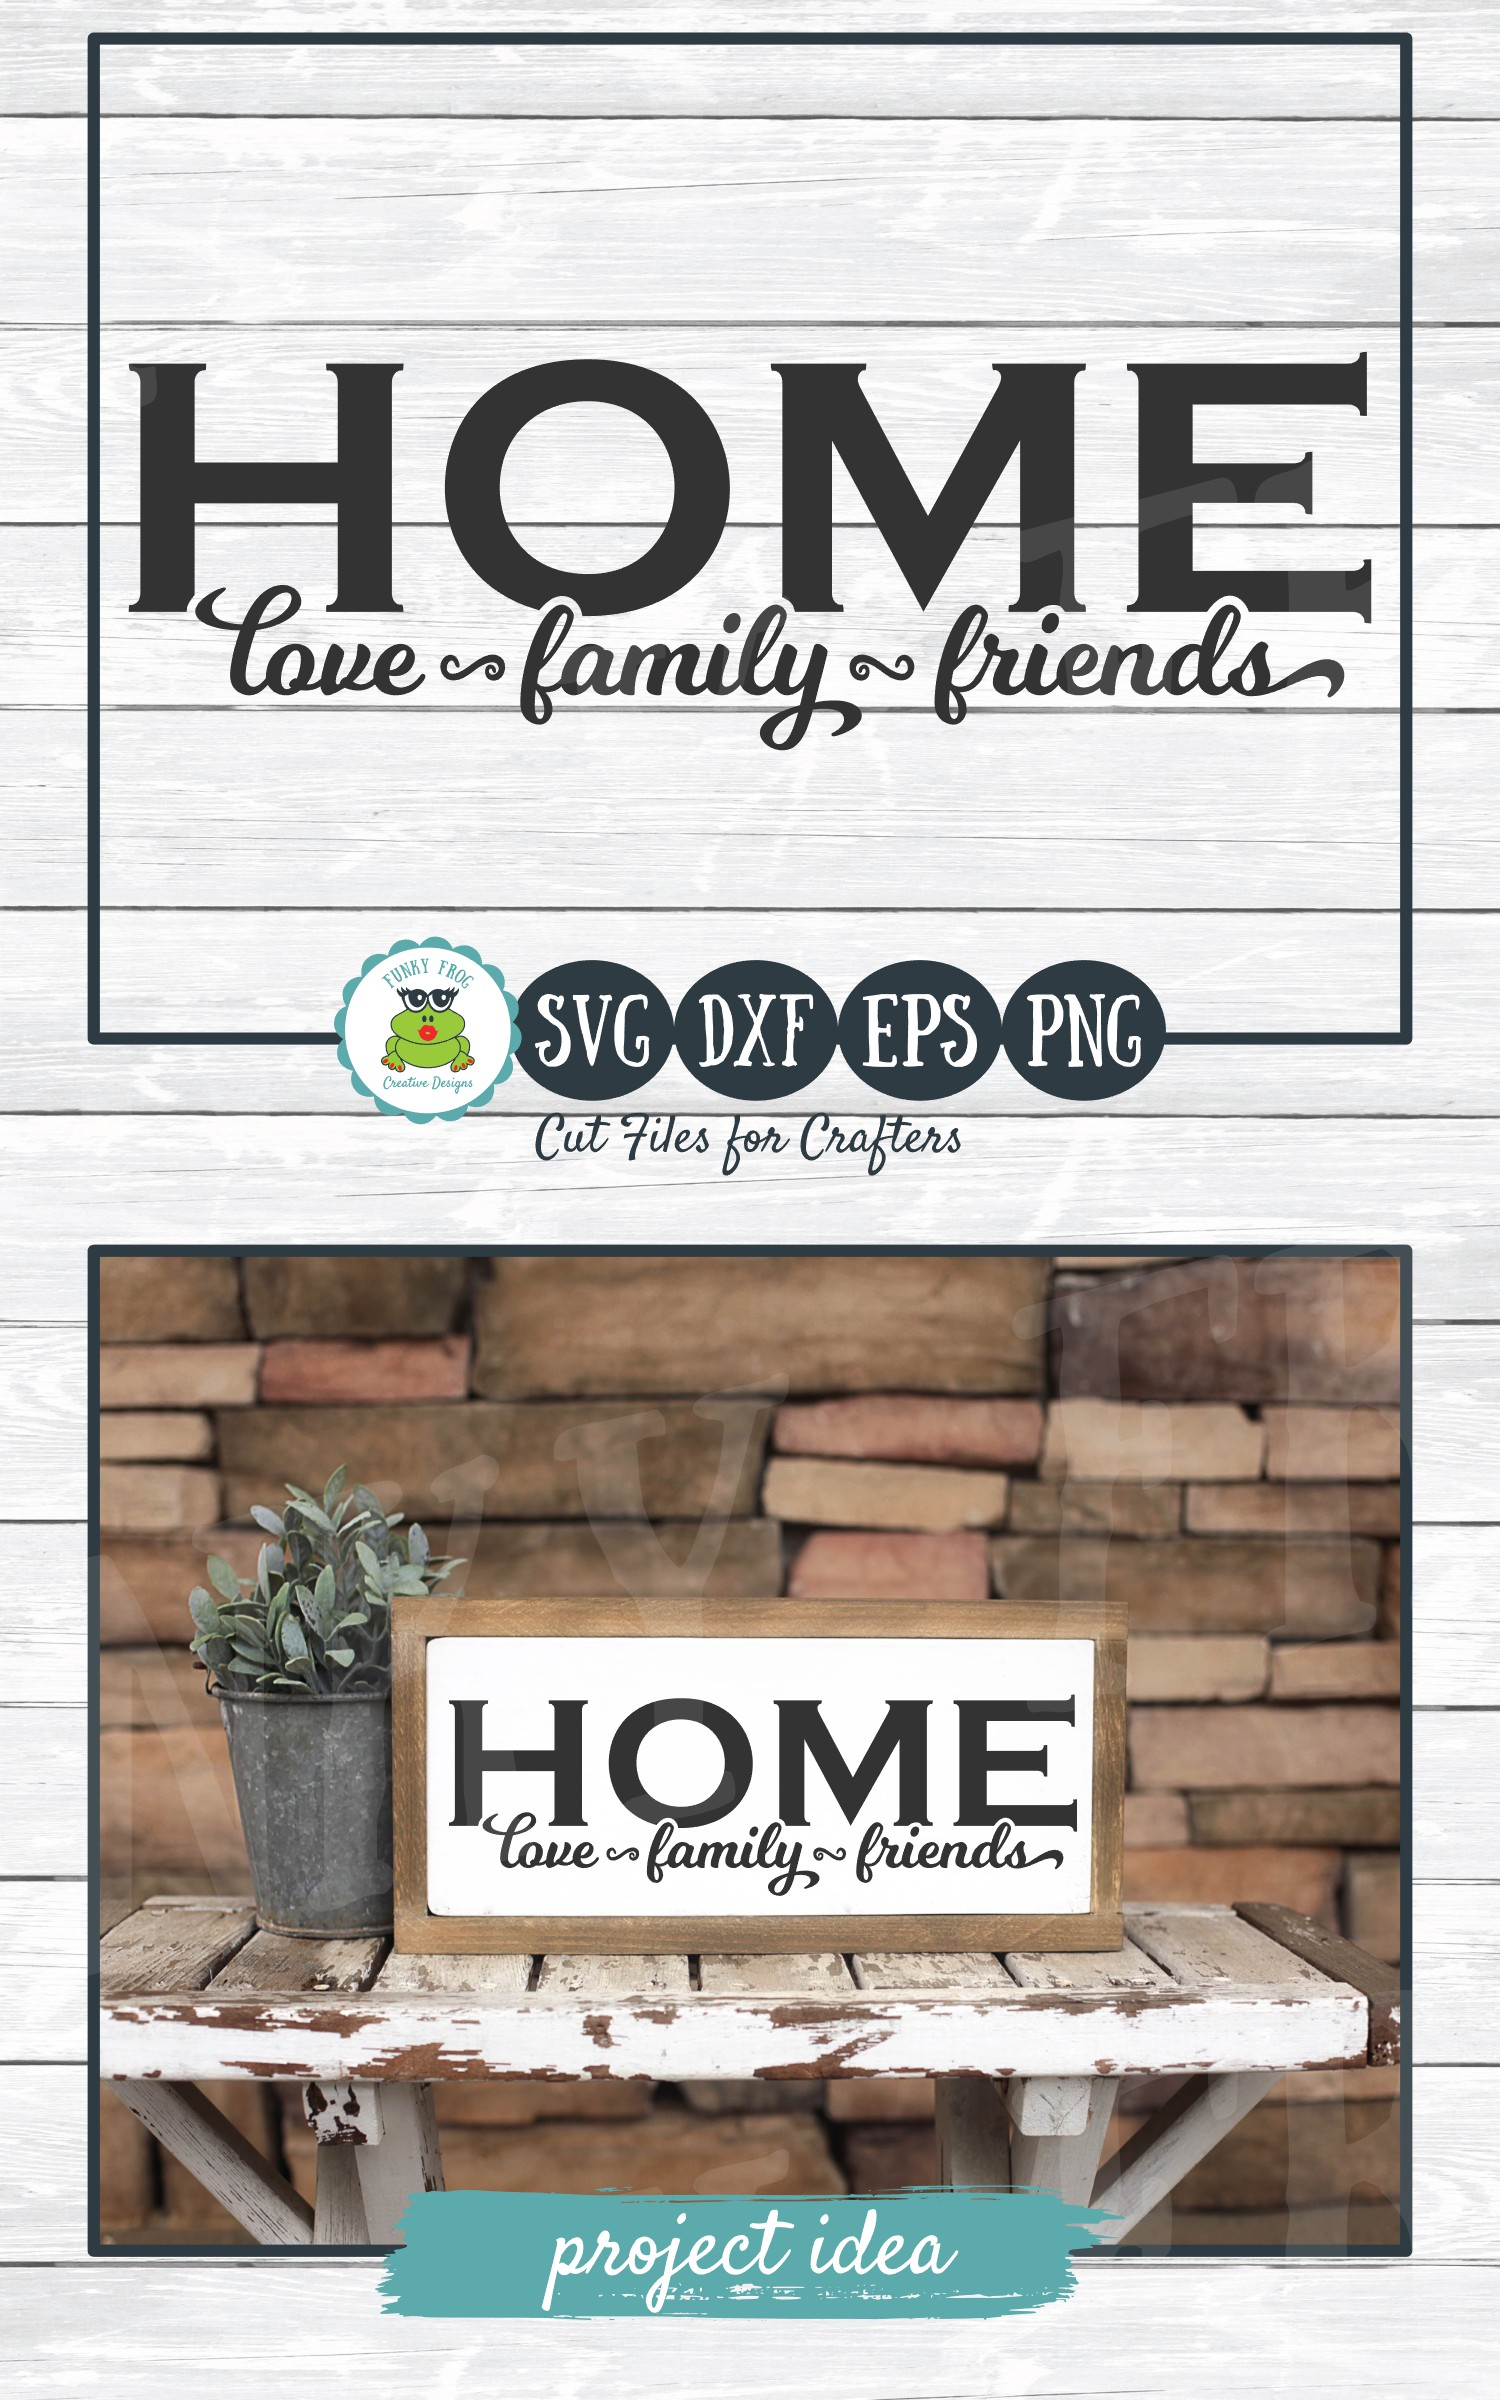 Home Love, Family, Friends - SVG Cut File for Crafters example image 4